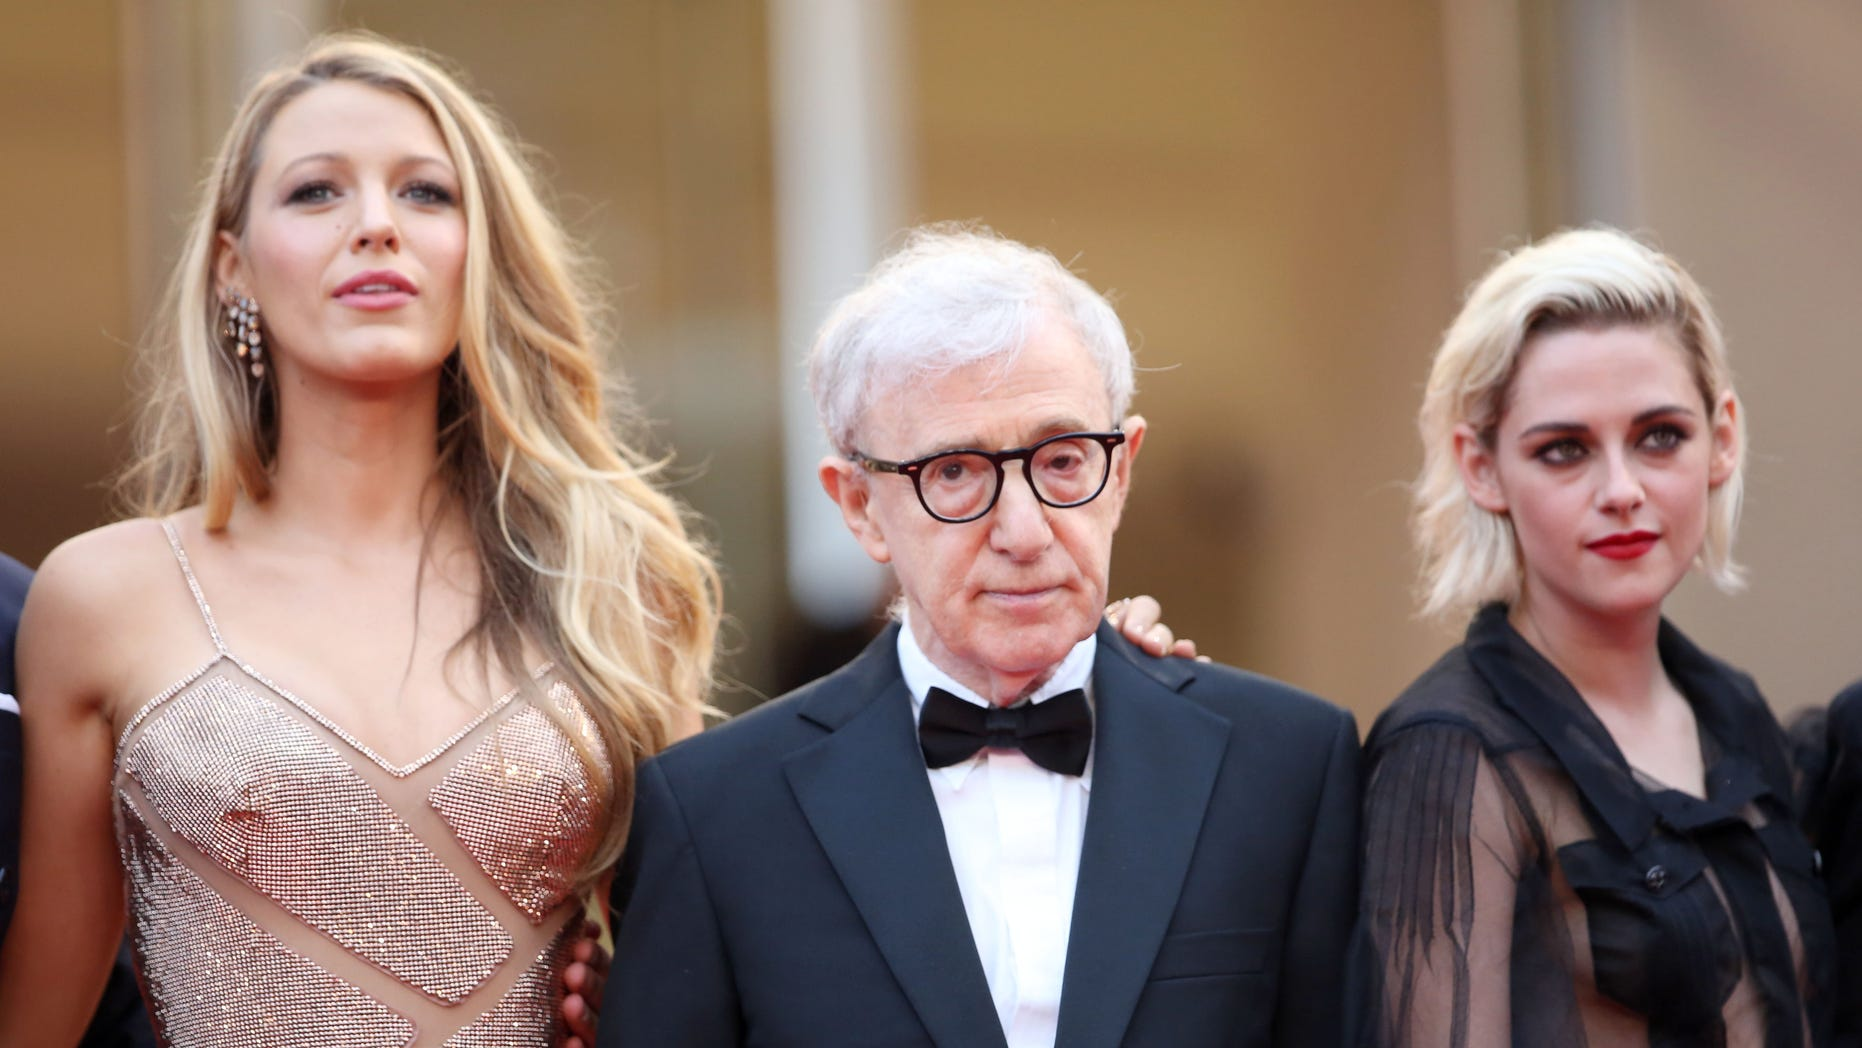 Actress Blake Lively, left, director Woody Allen and actress Kristen Stewart arrive on the red carpet for the screening of the film Cafe Society and the Opening Ceremony at the 69th international film festival, Cannes, southern France, Wednesday, May 11, 2016.